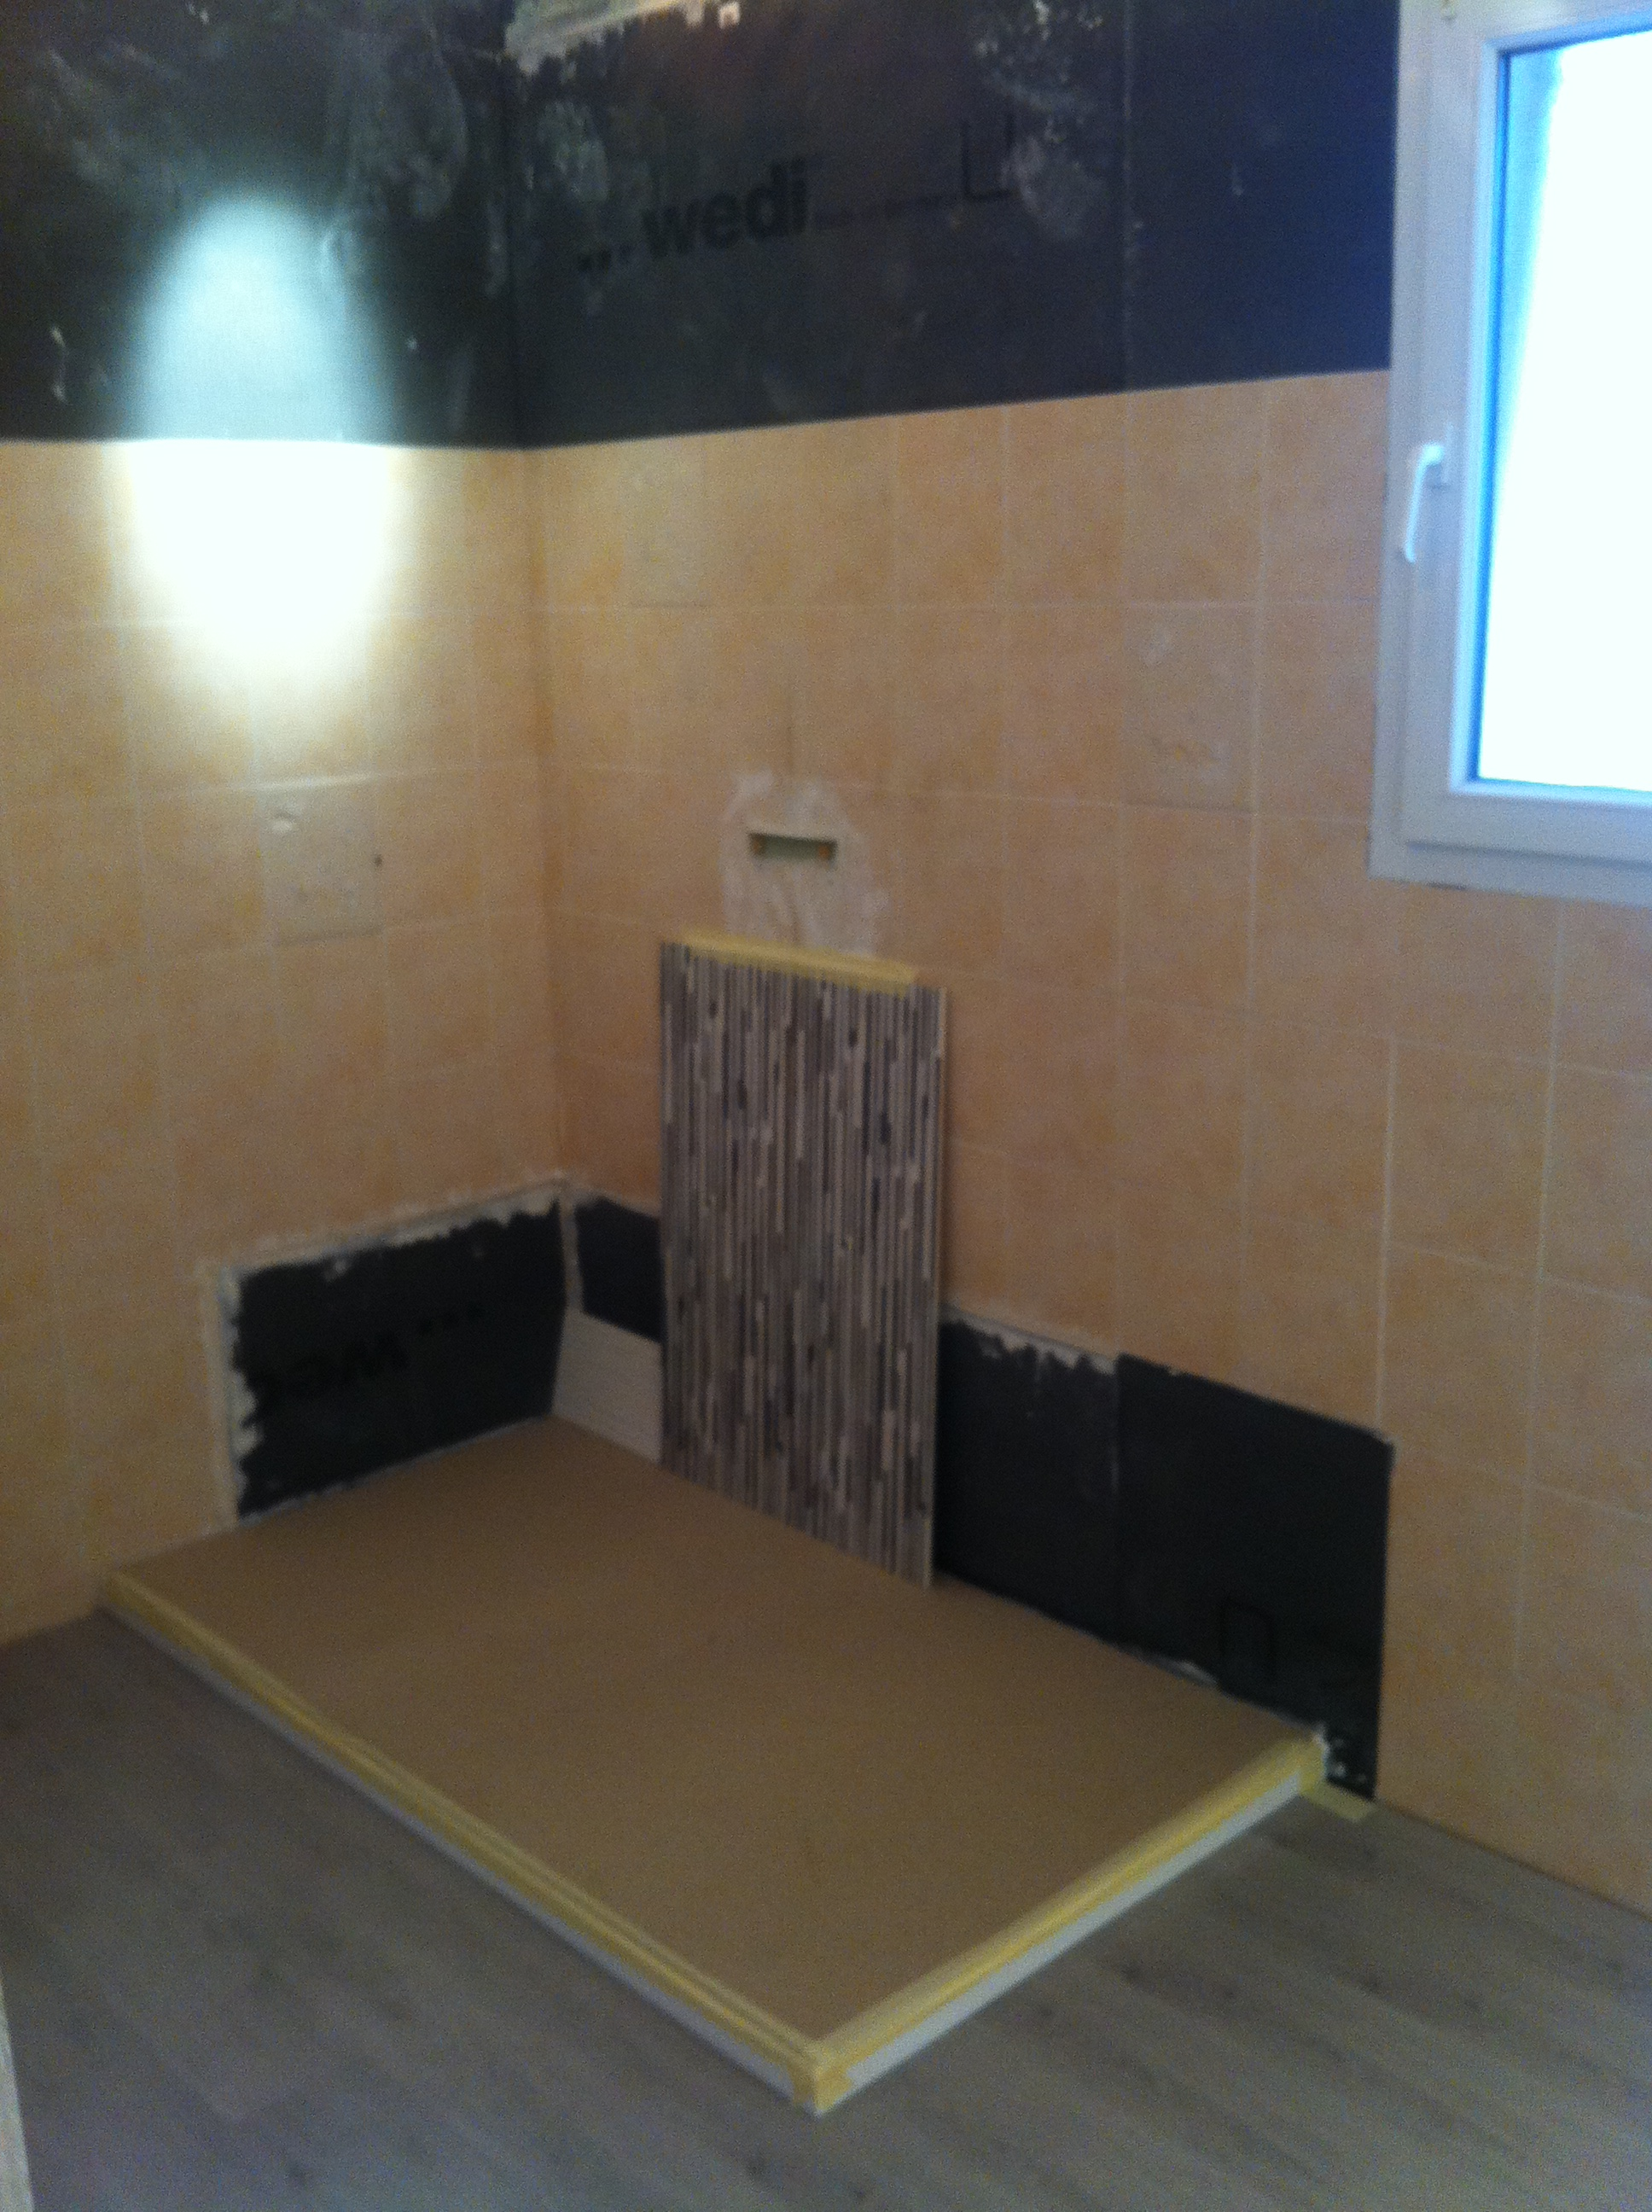 panneau renovation salle de bain with panneau renovation. Black Bedroom Furniture Sets. Home Design Ideas